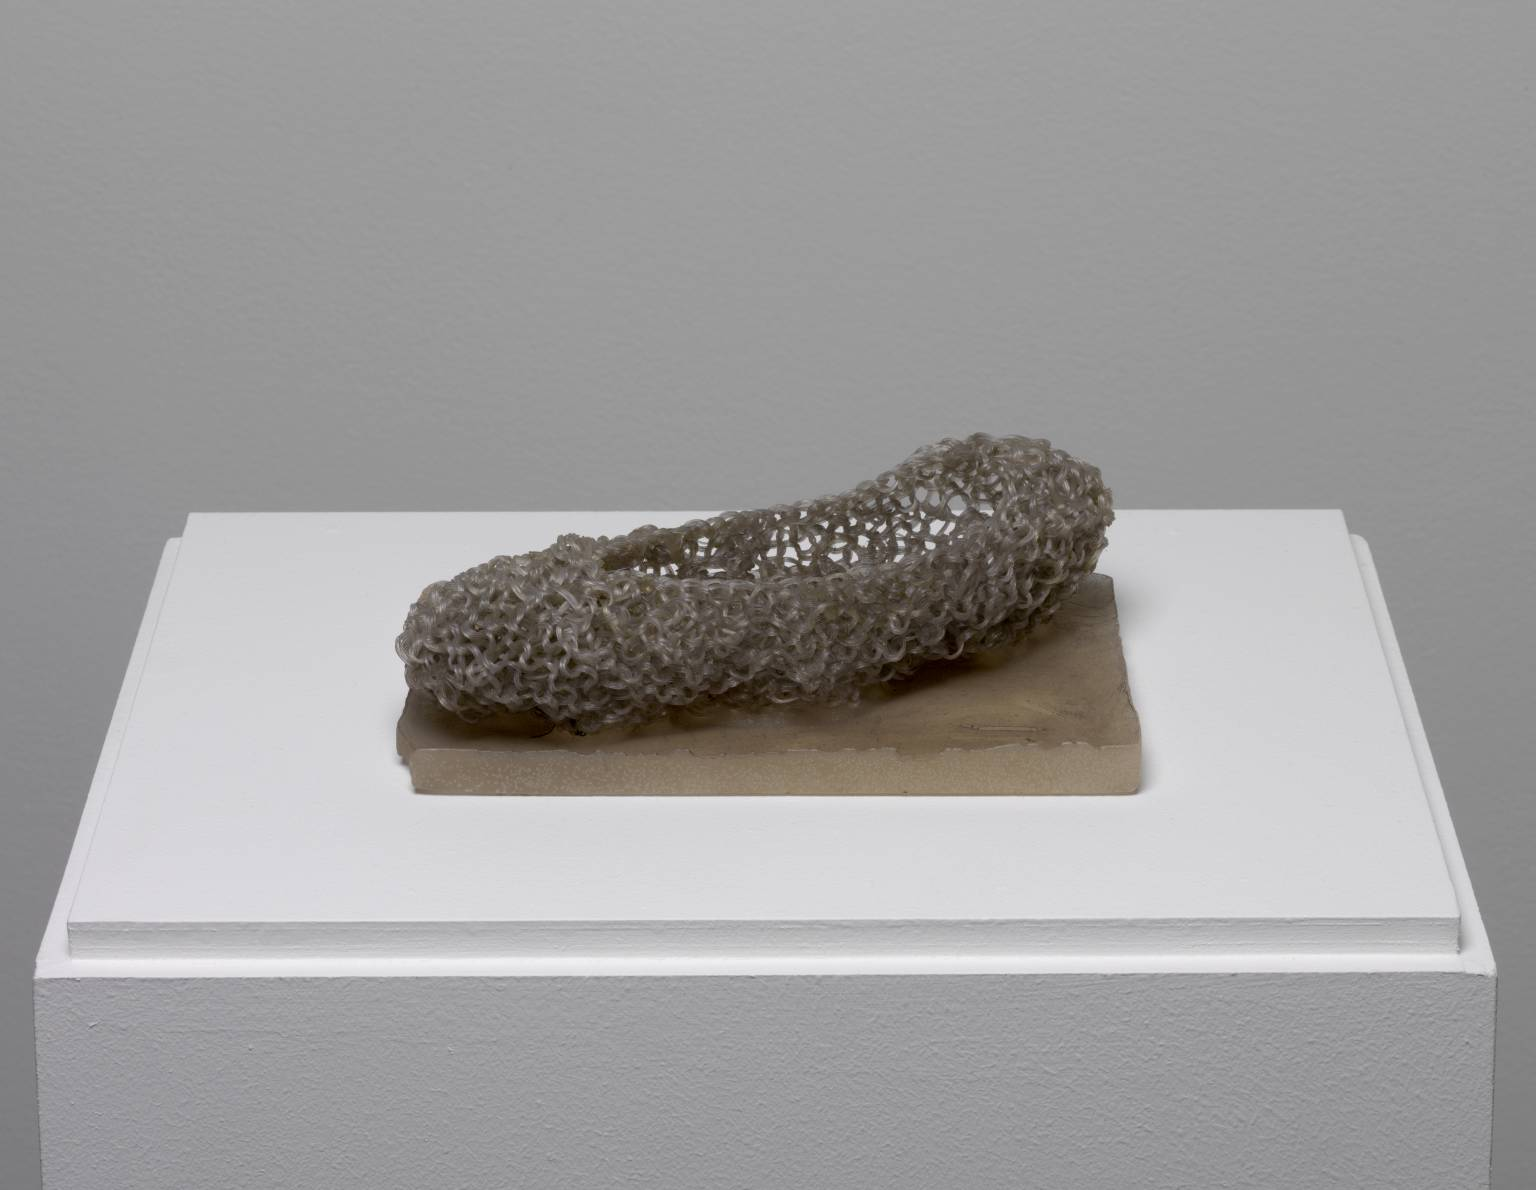 Untitled (Little shoe) 1968 by Marisa Merz born 1931